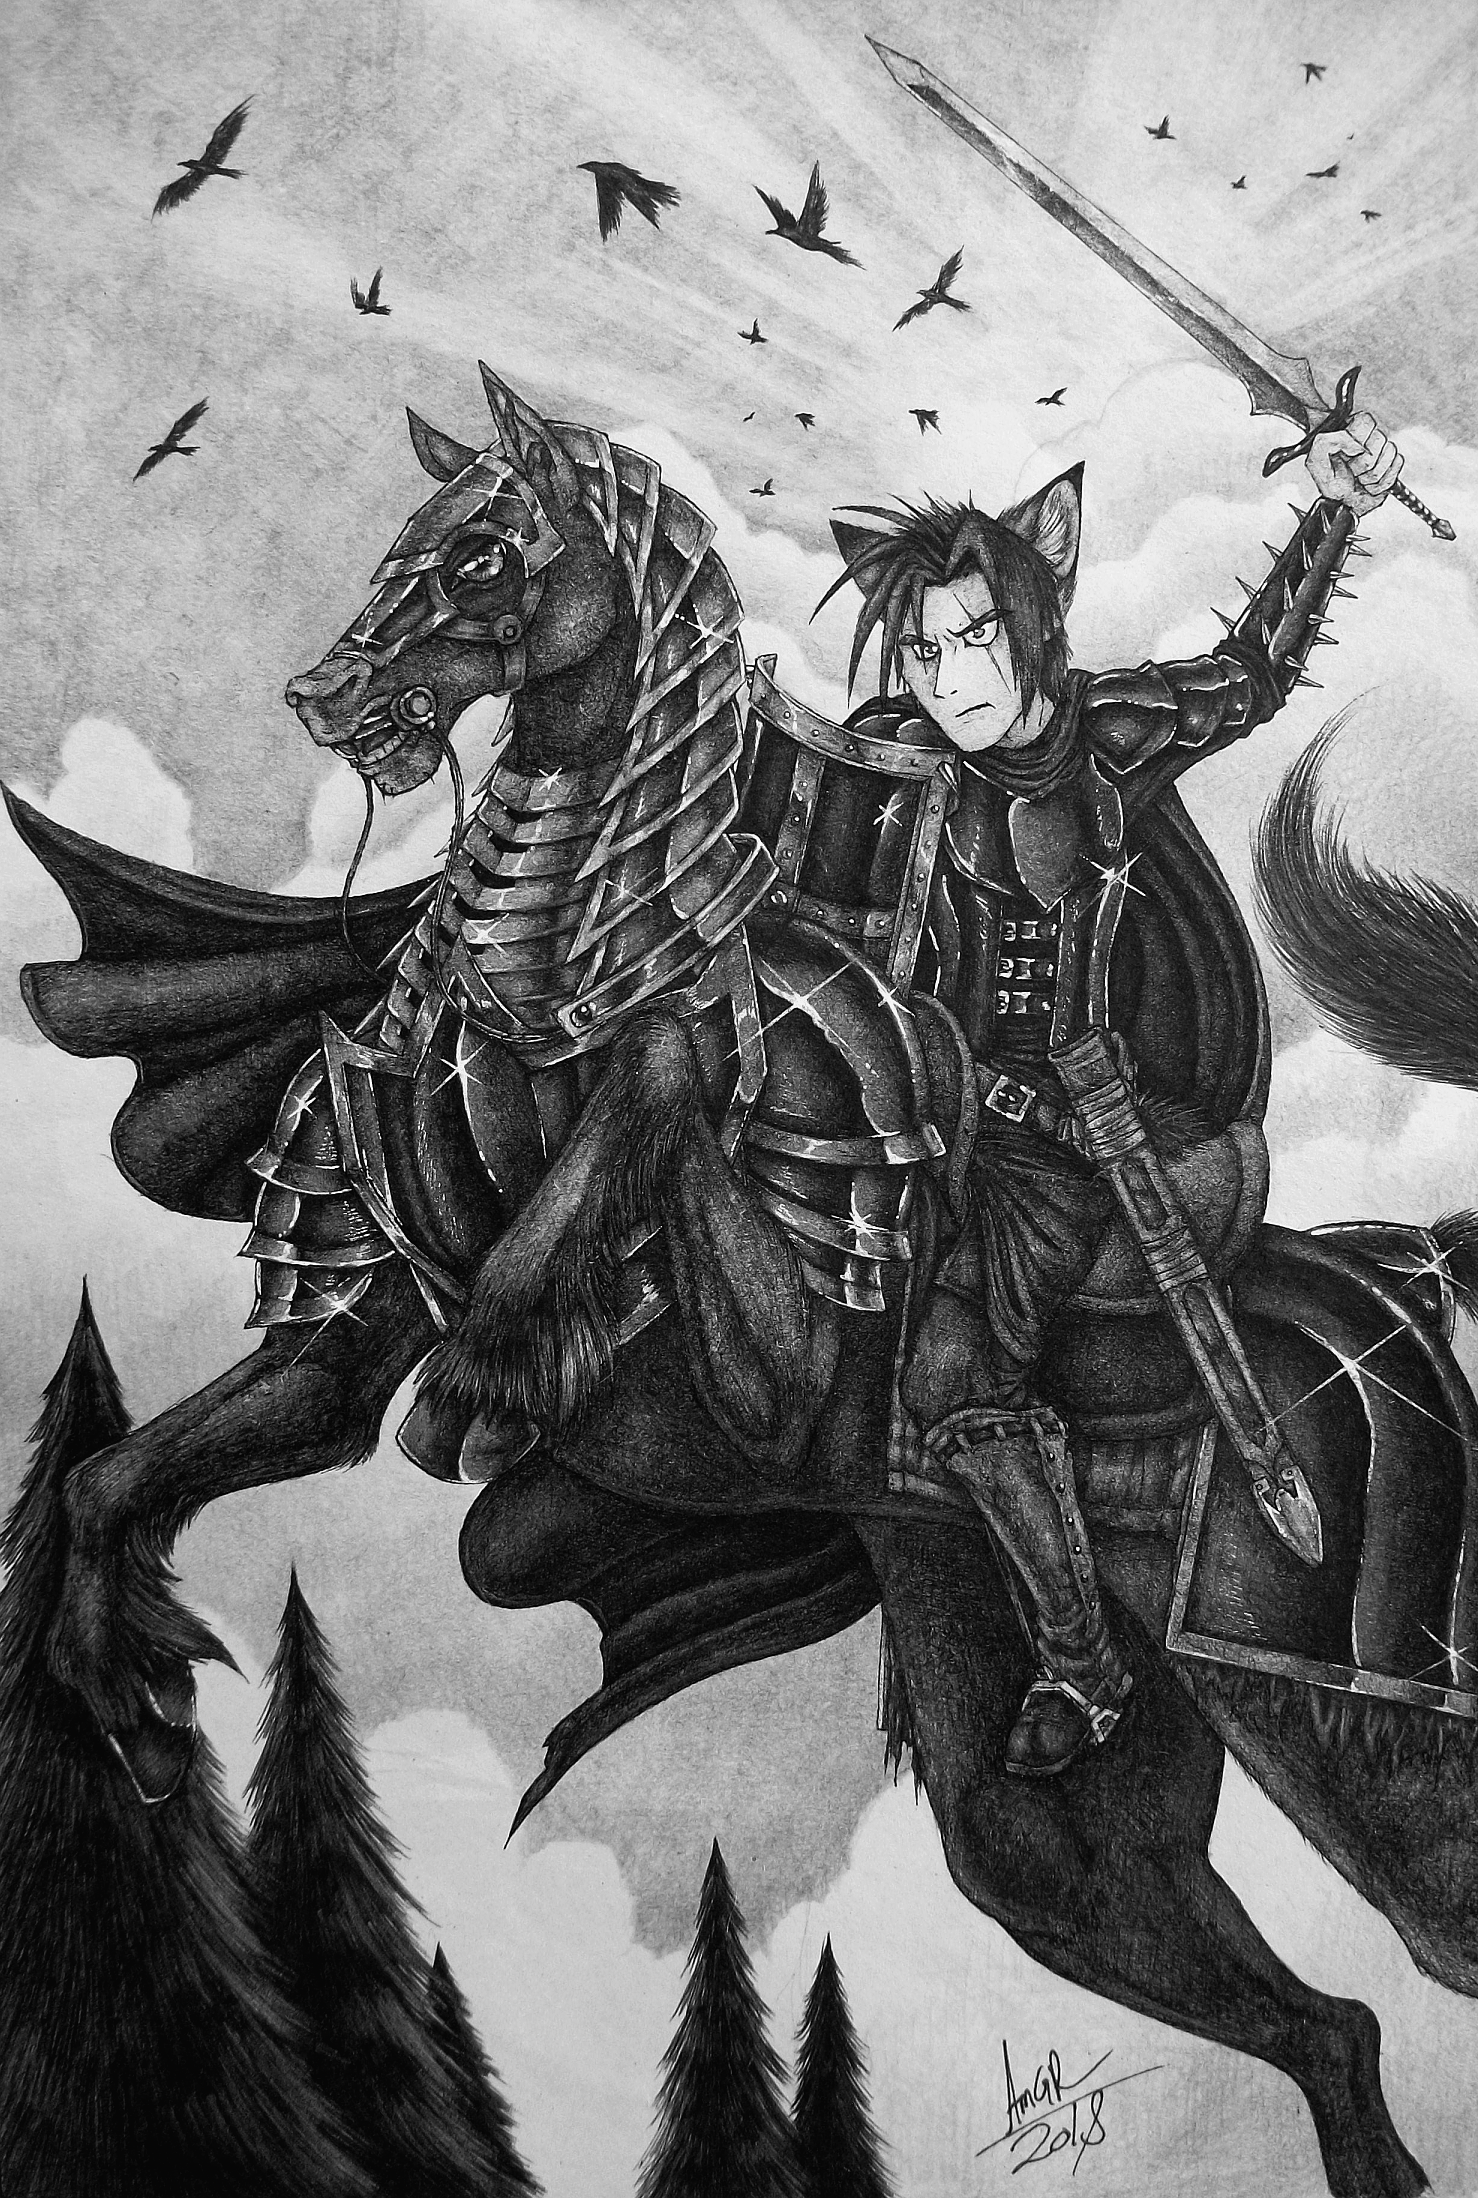 A Warrior and His Mighty Steed